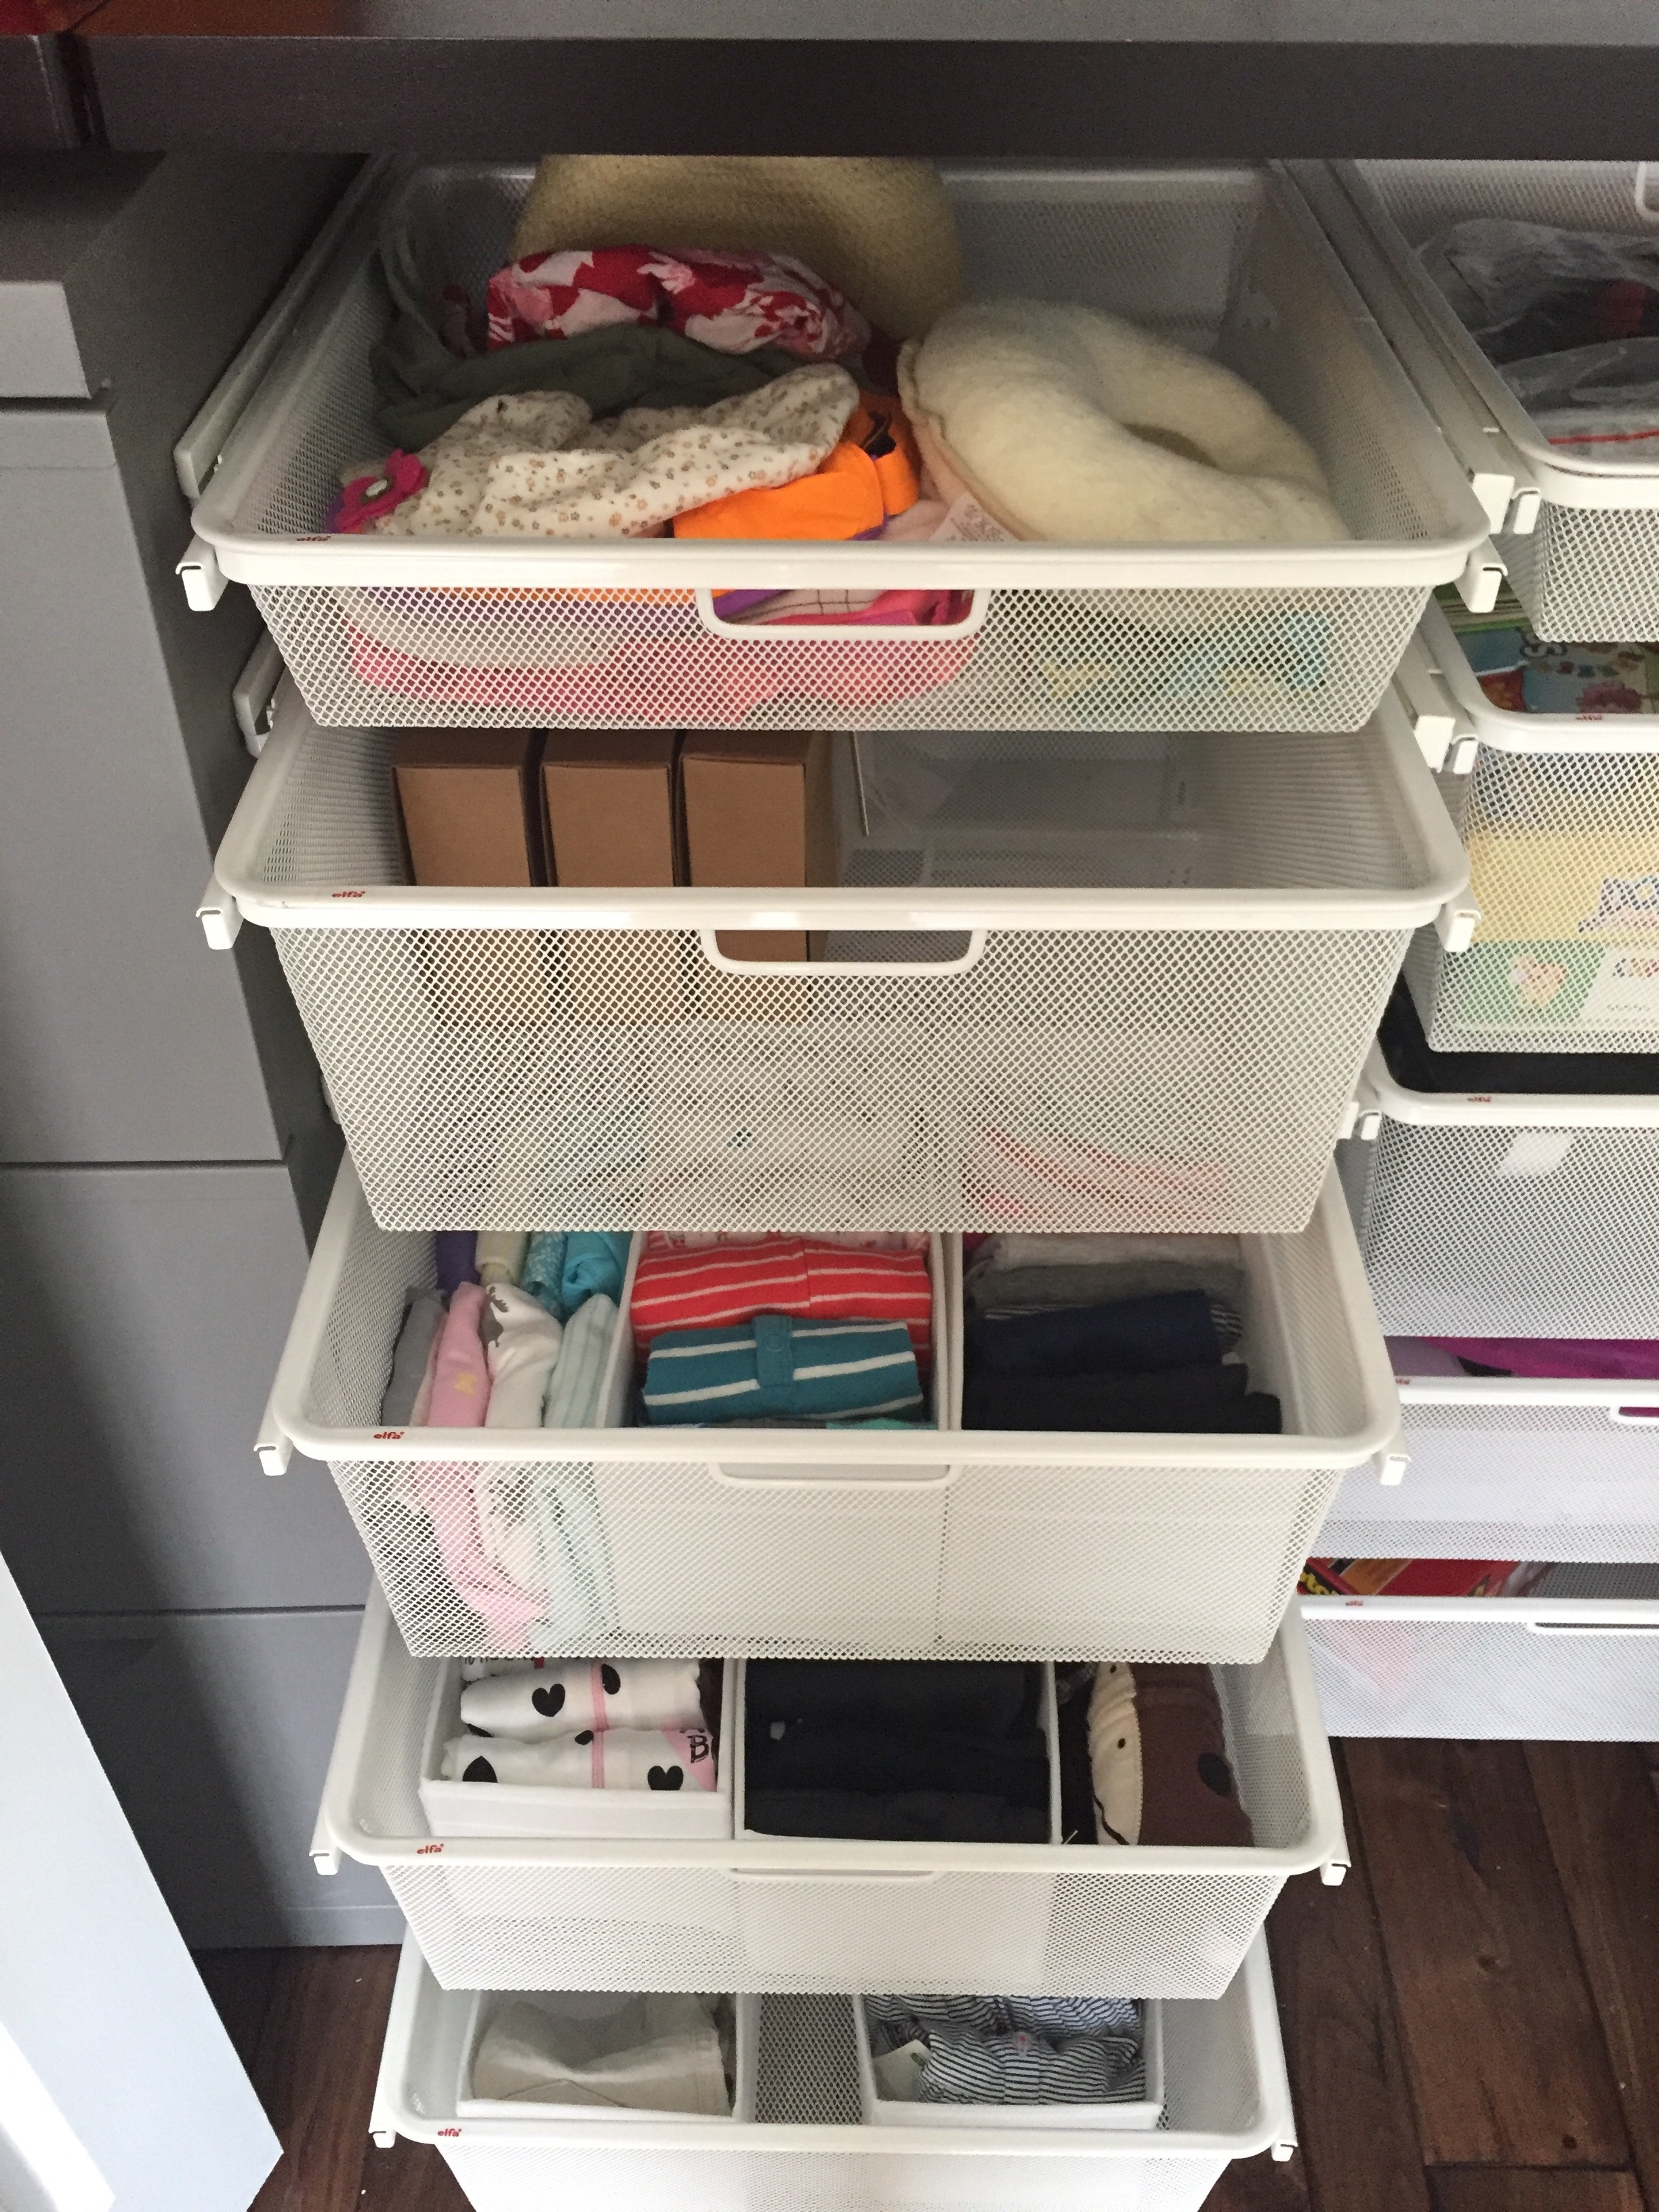 Office Supplies Are Sorted And Stored In The Colorful Open Bins (similar)  On The Left Side Of The Closet.